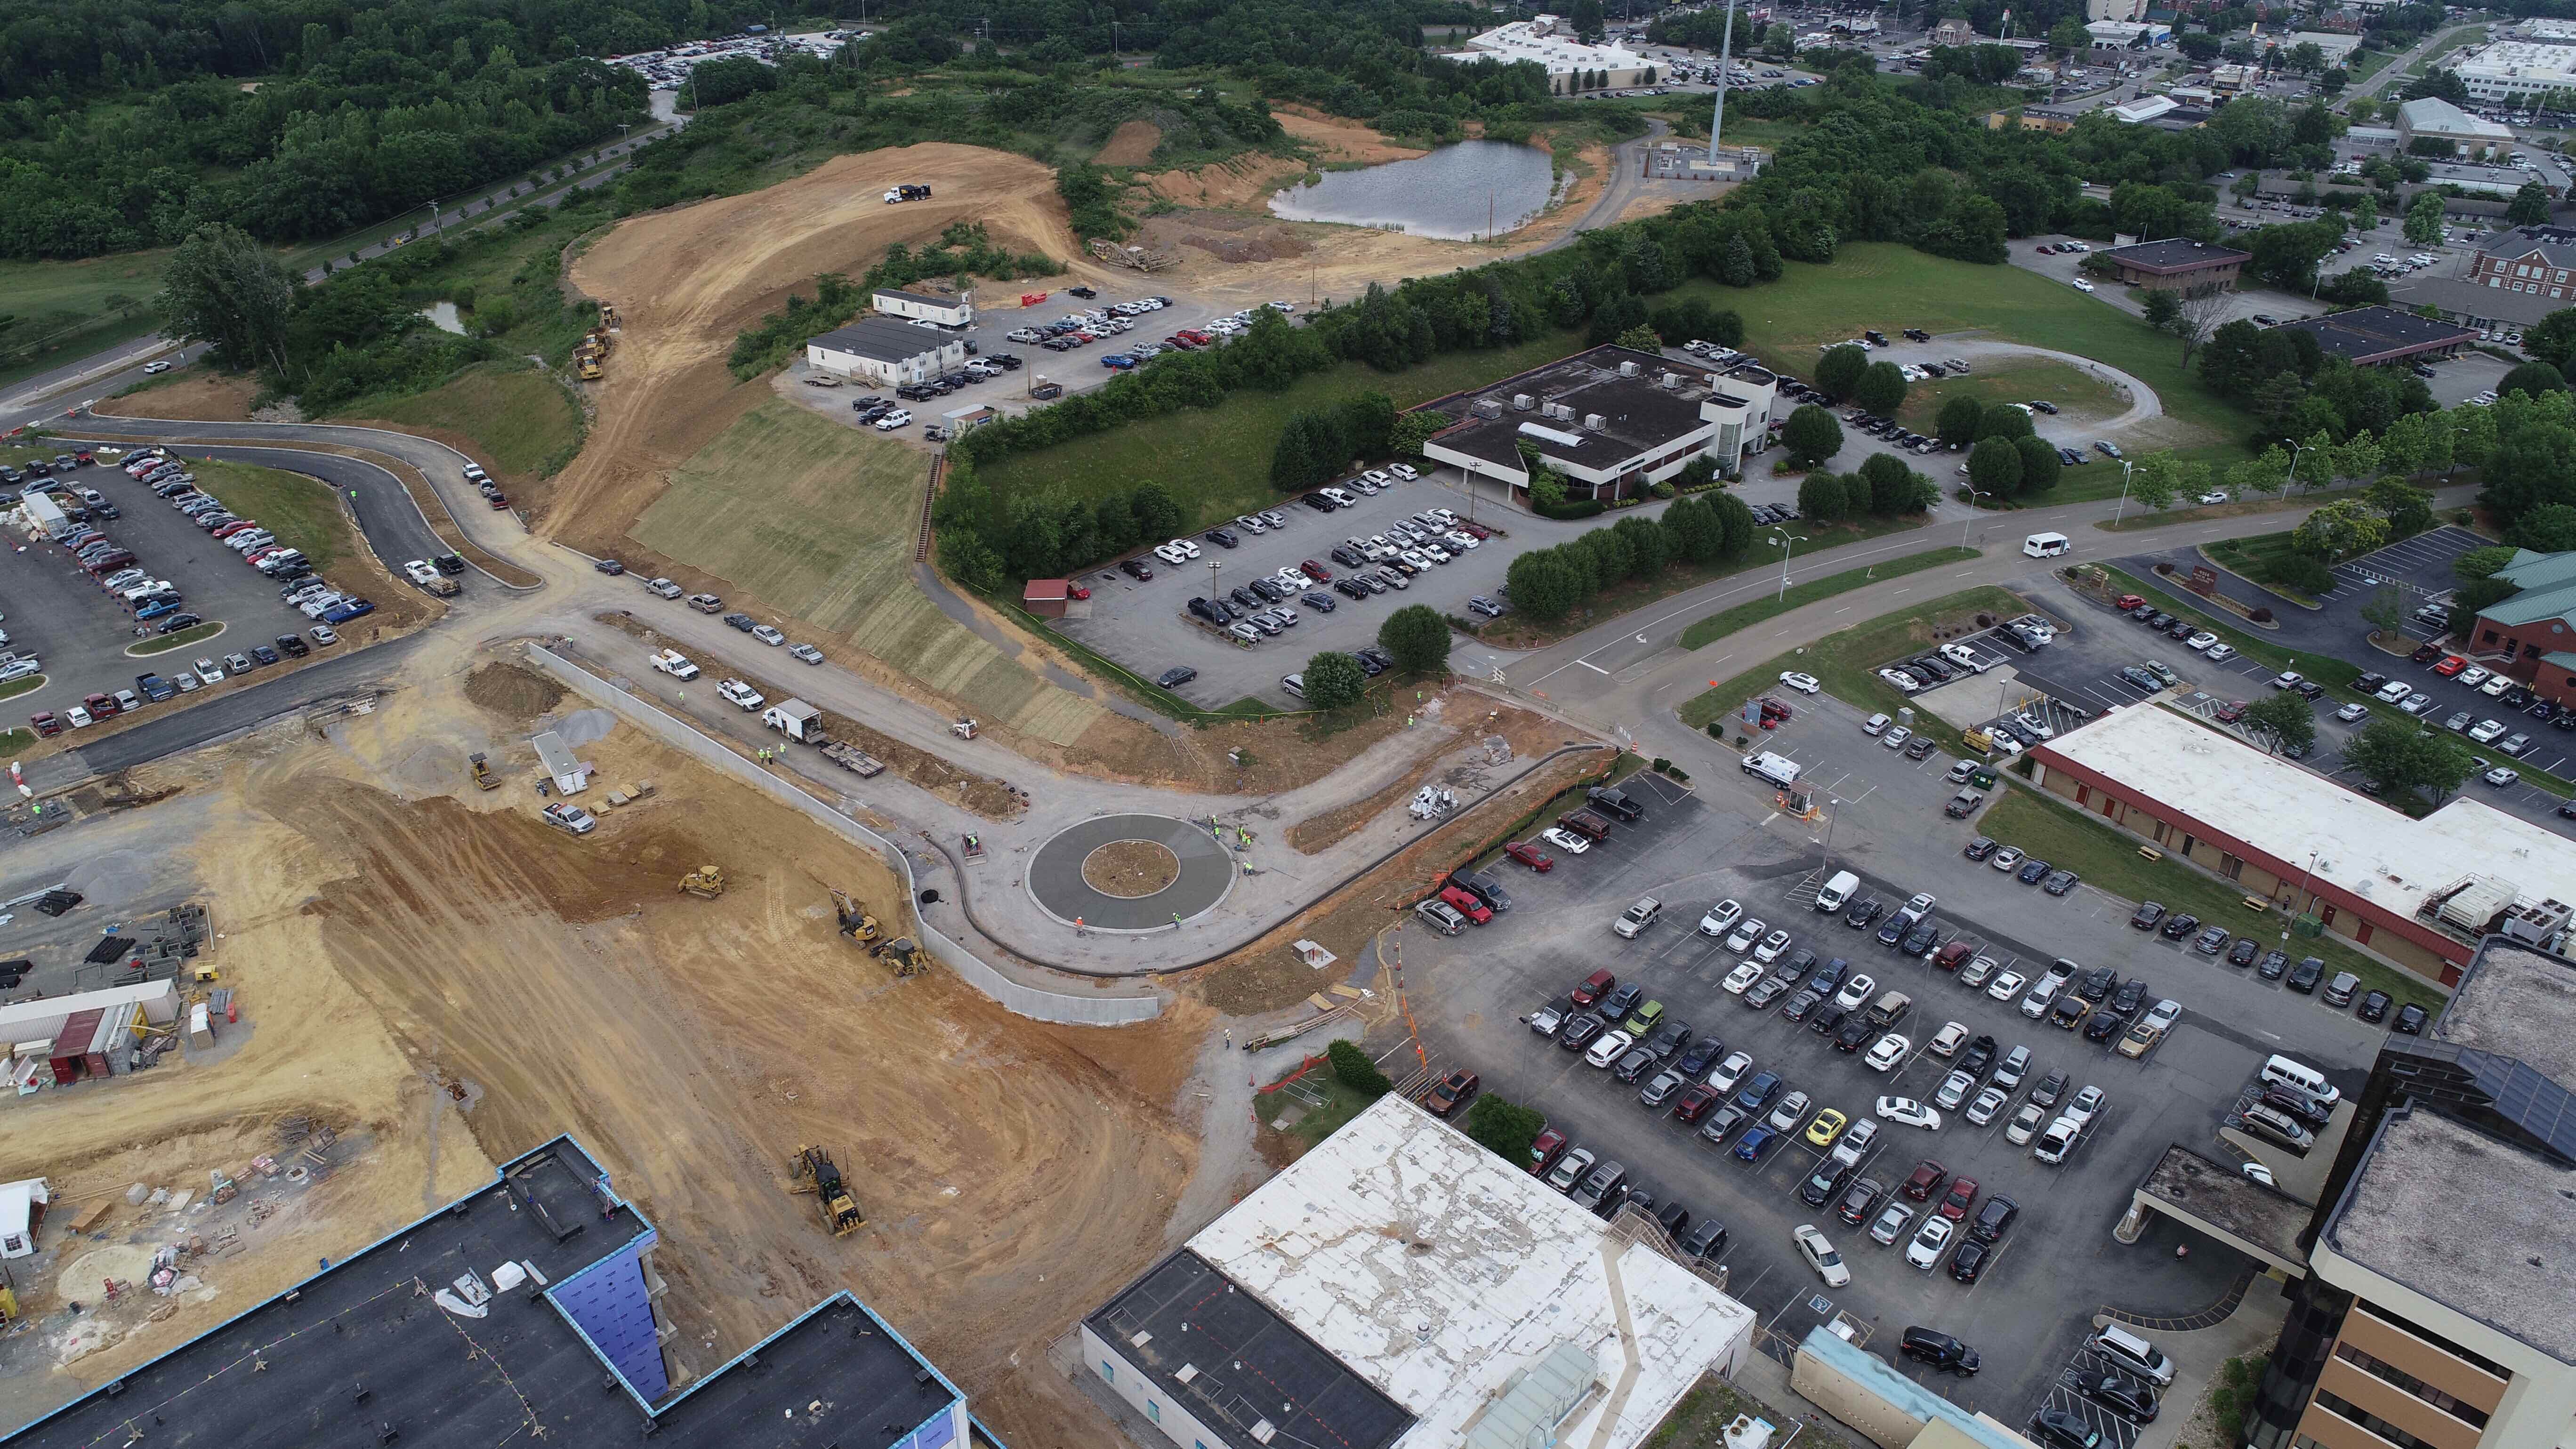 New roundabout aerial view.